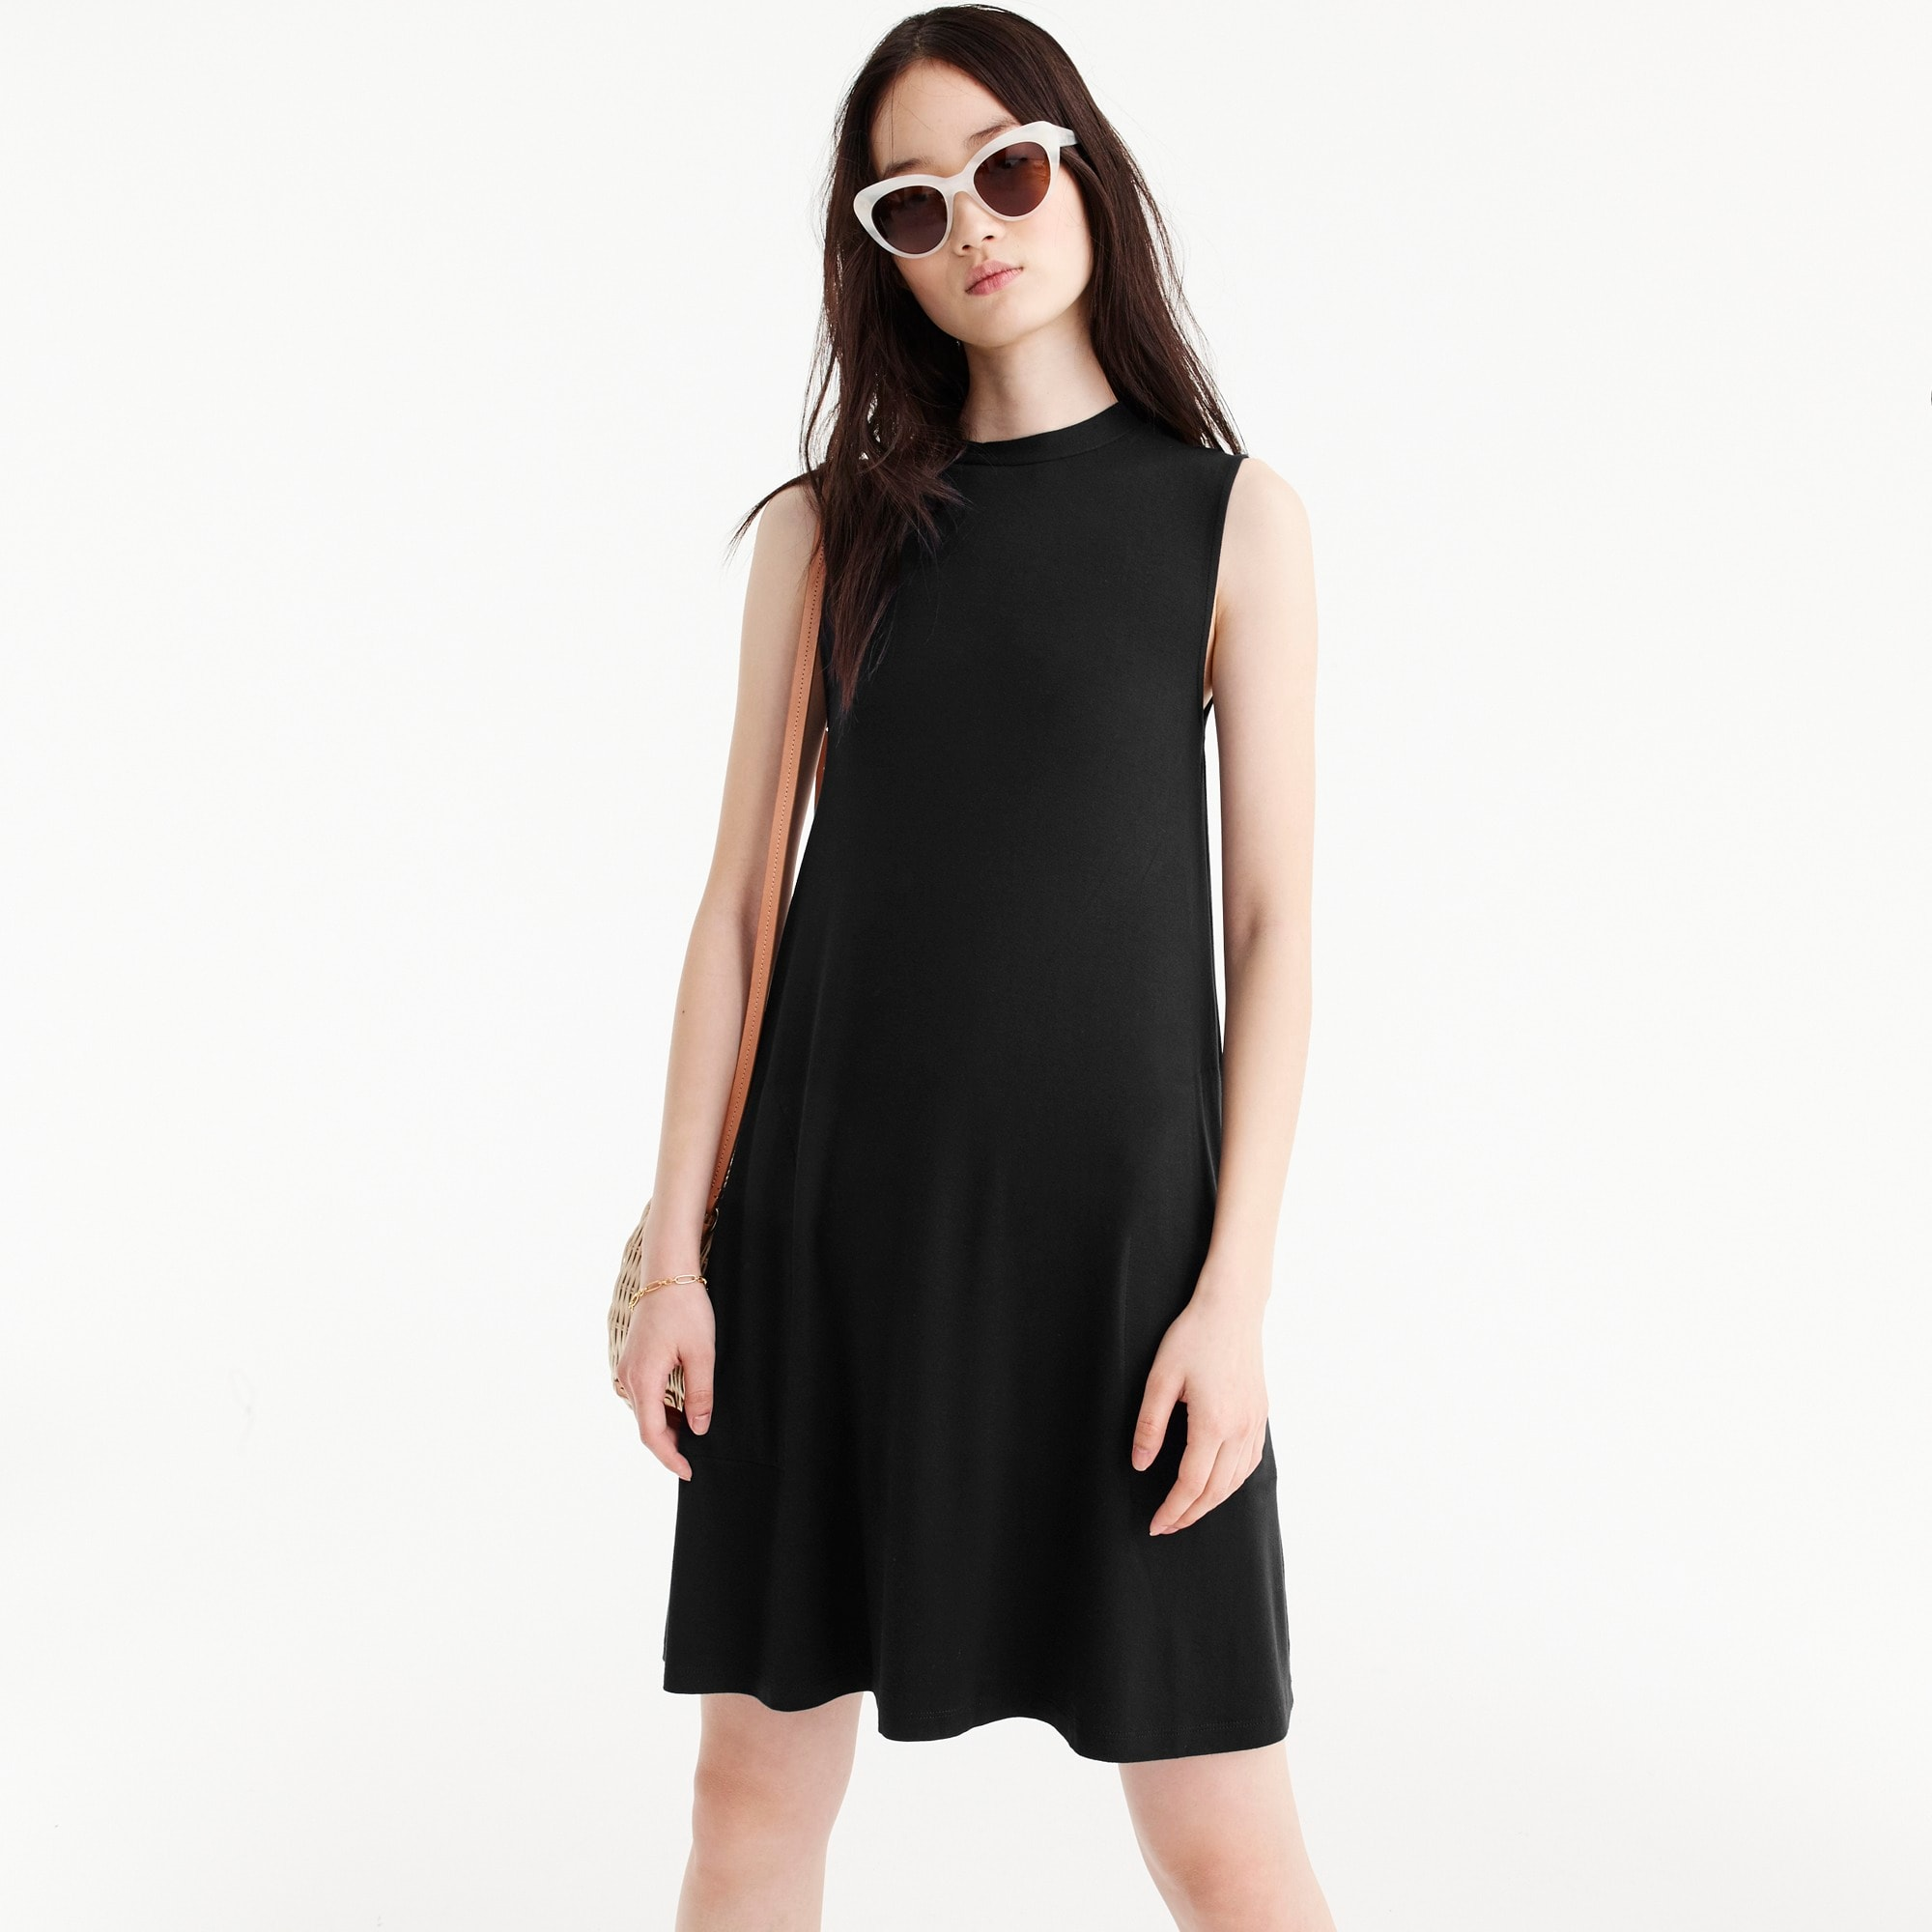 Image 2 for Swingy sleeveless dress